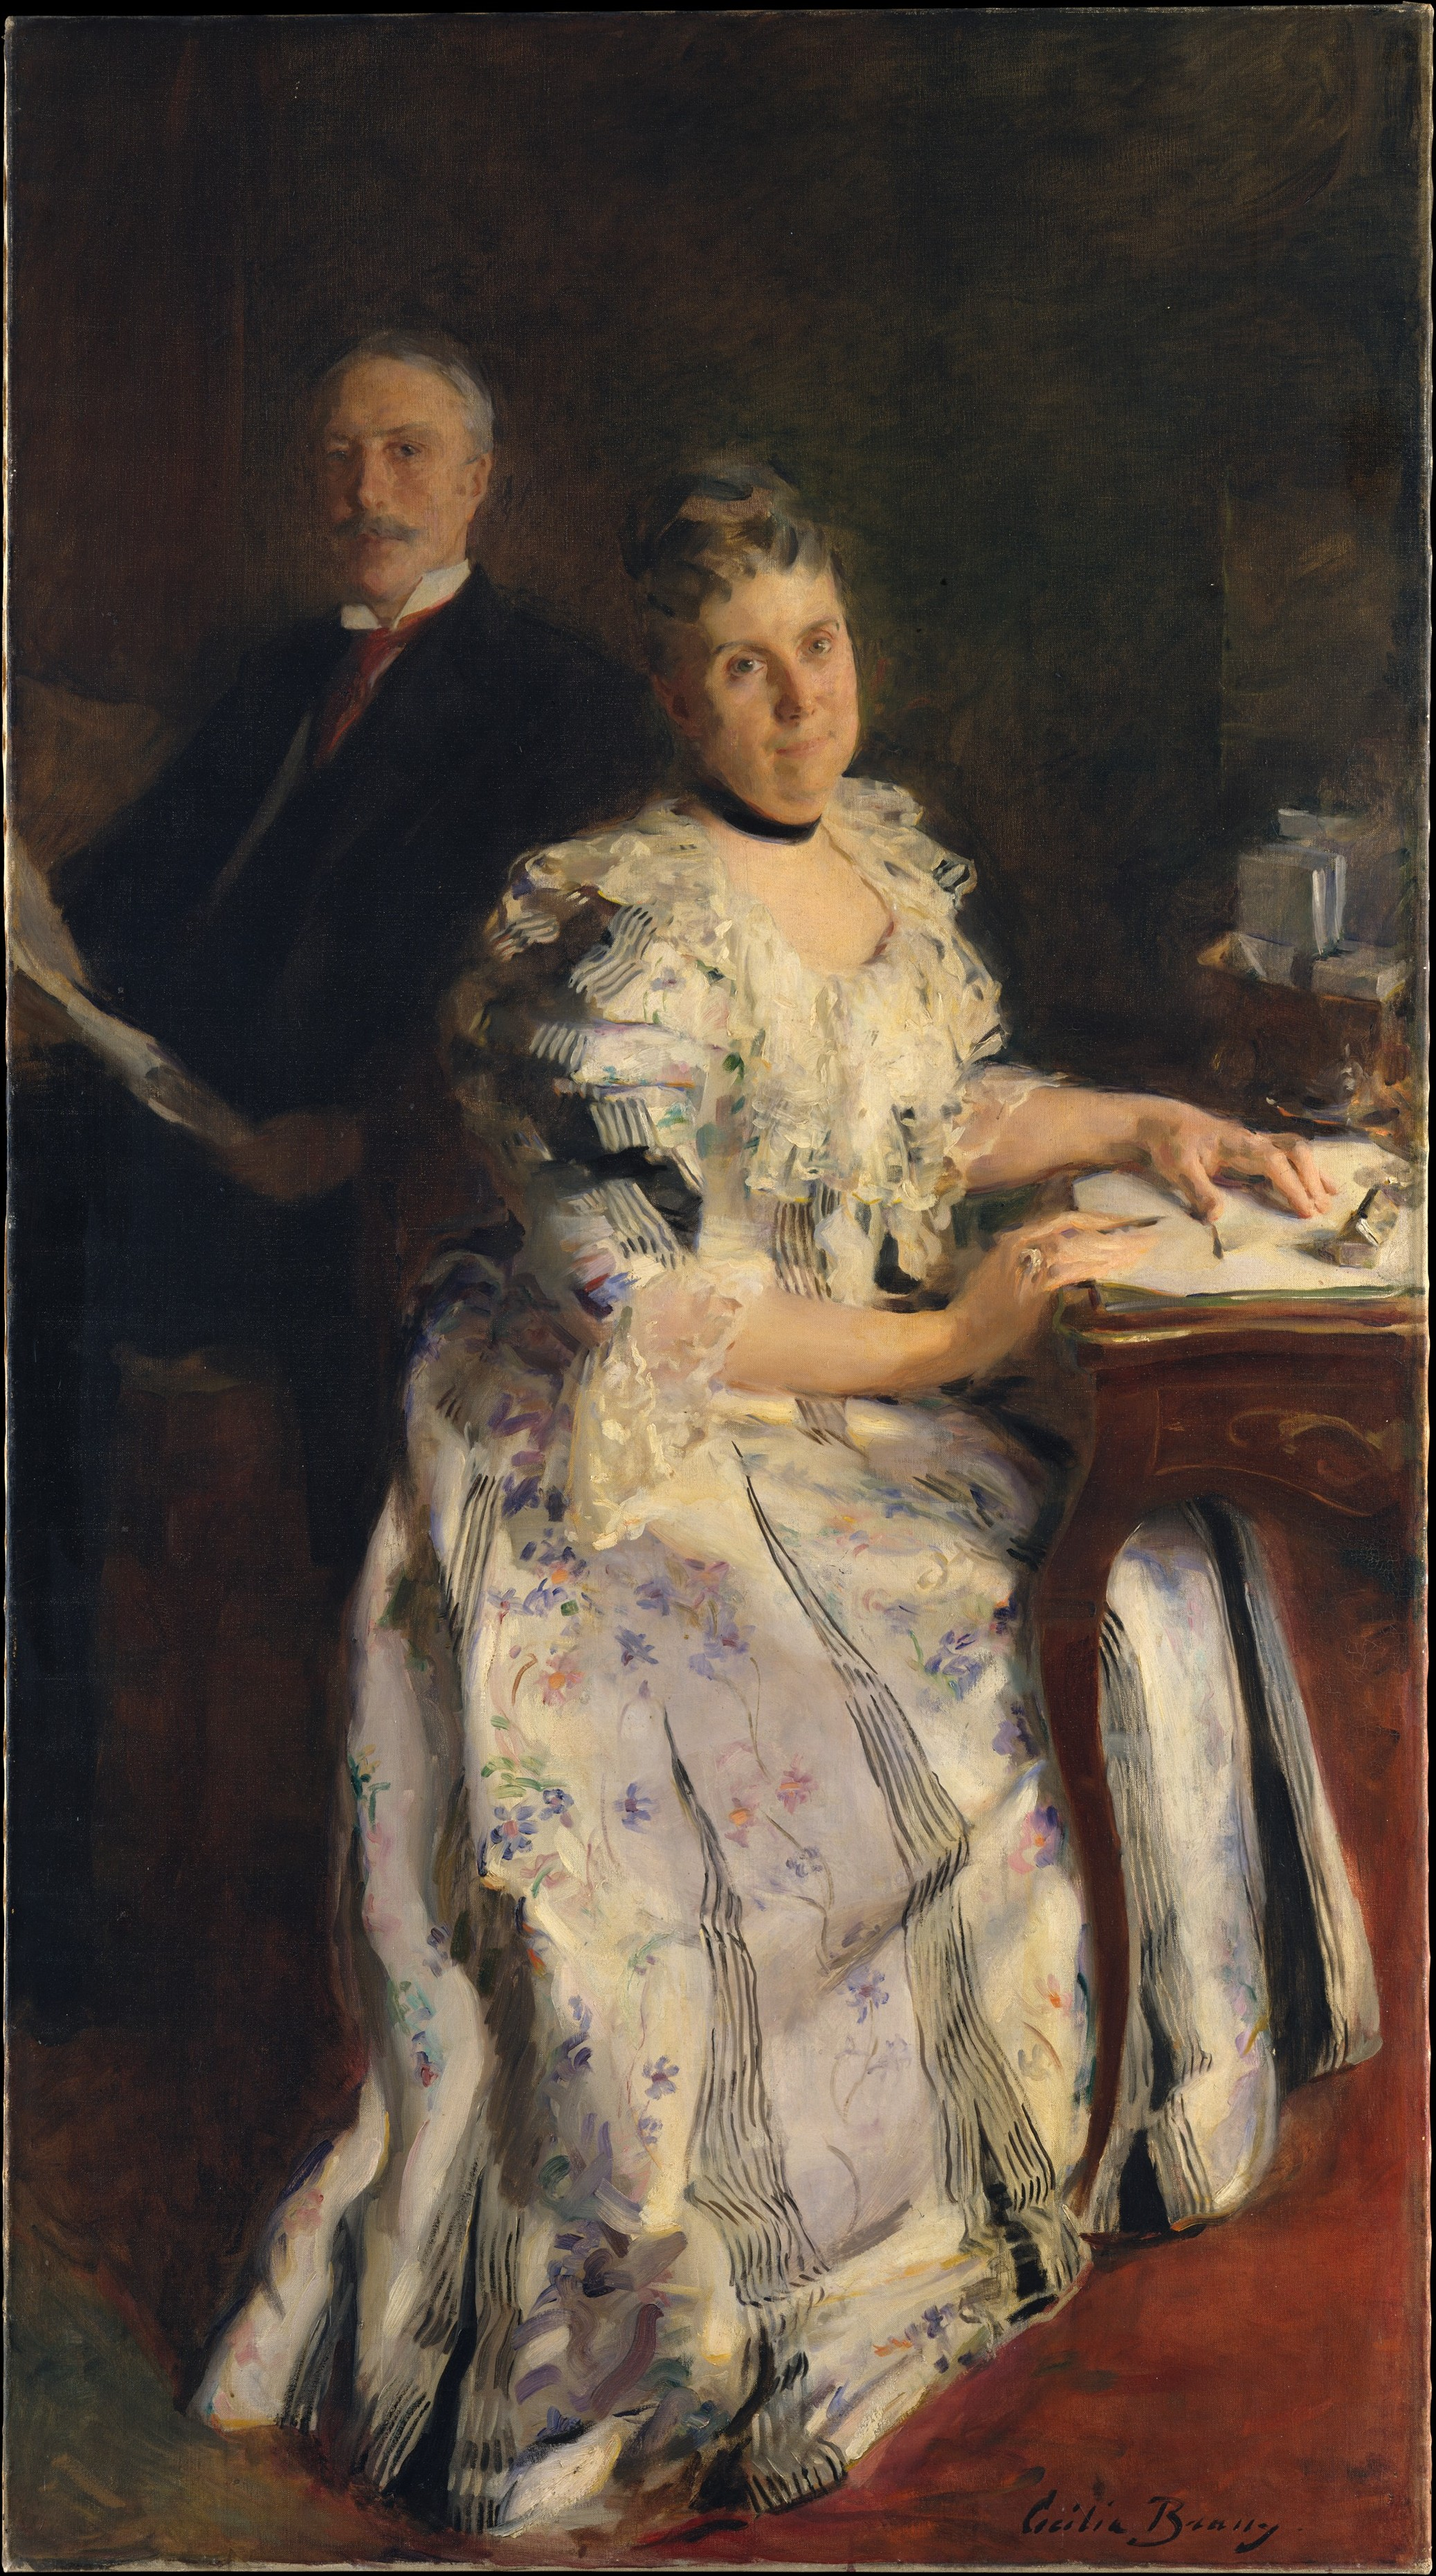 Mr and Mrs Anson Phelps Stokes, about 1898.